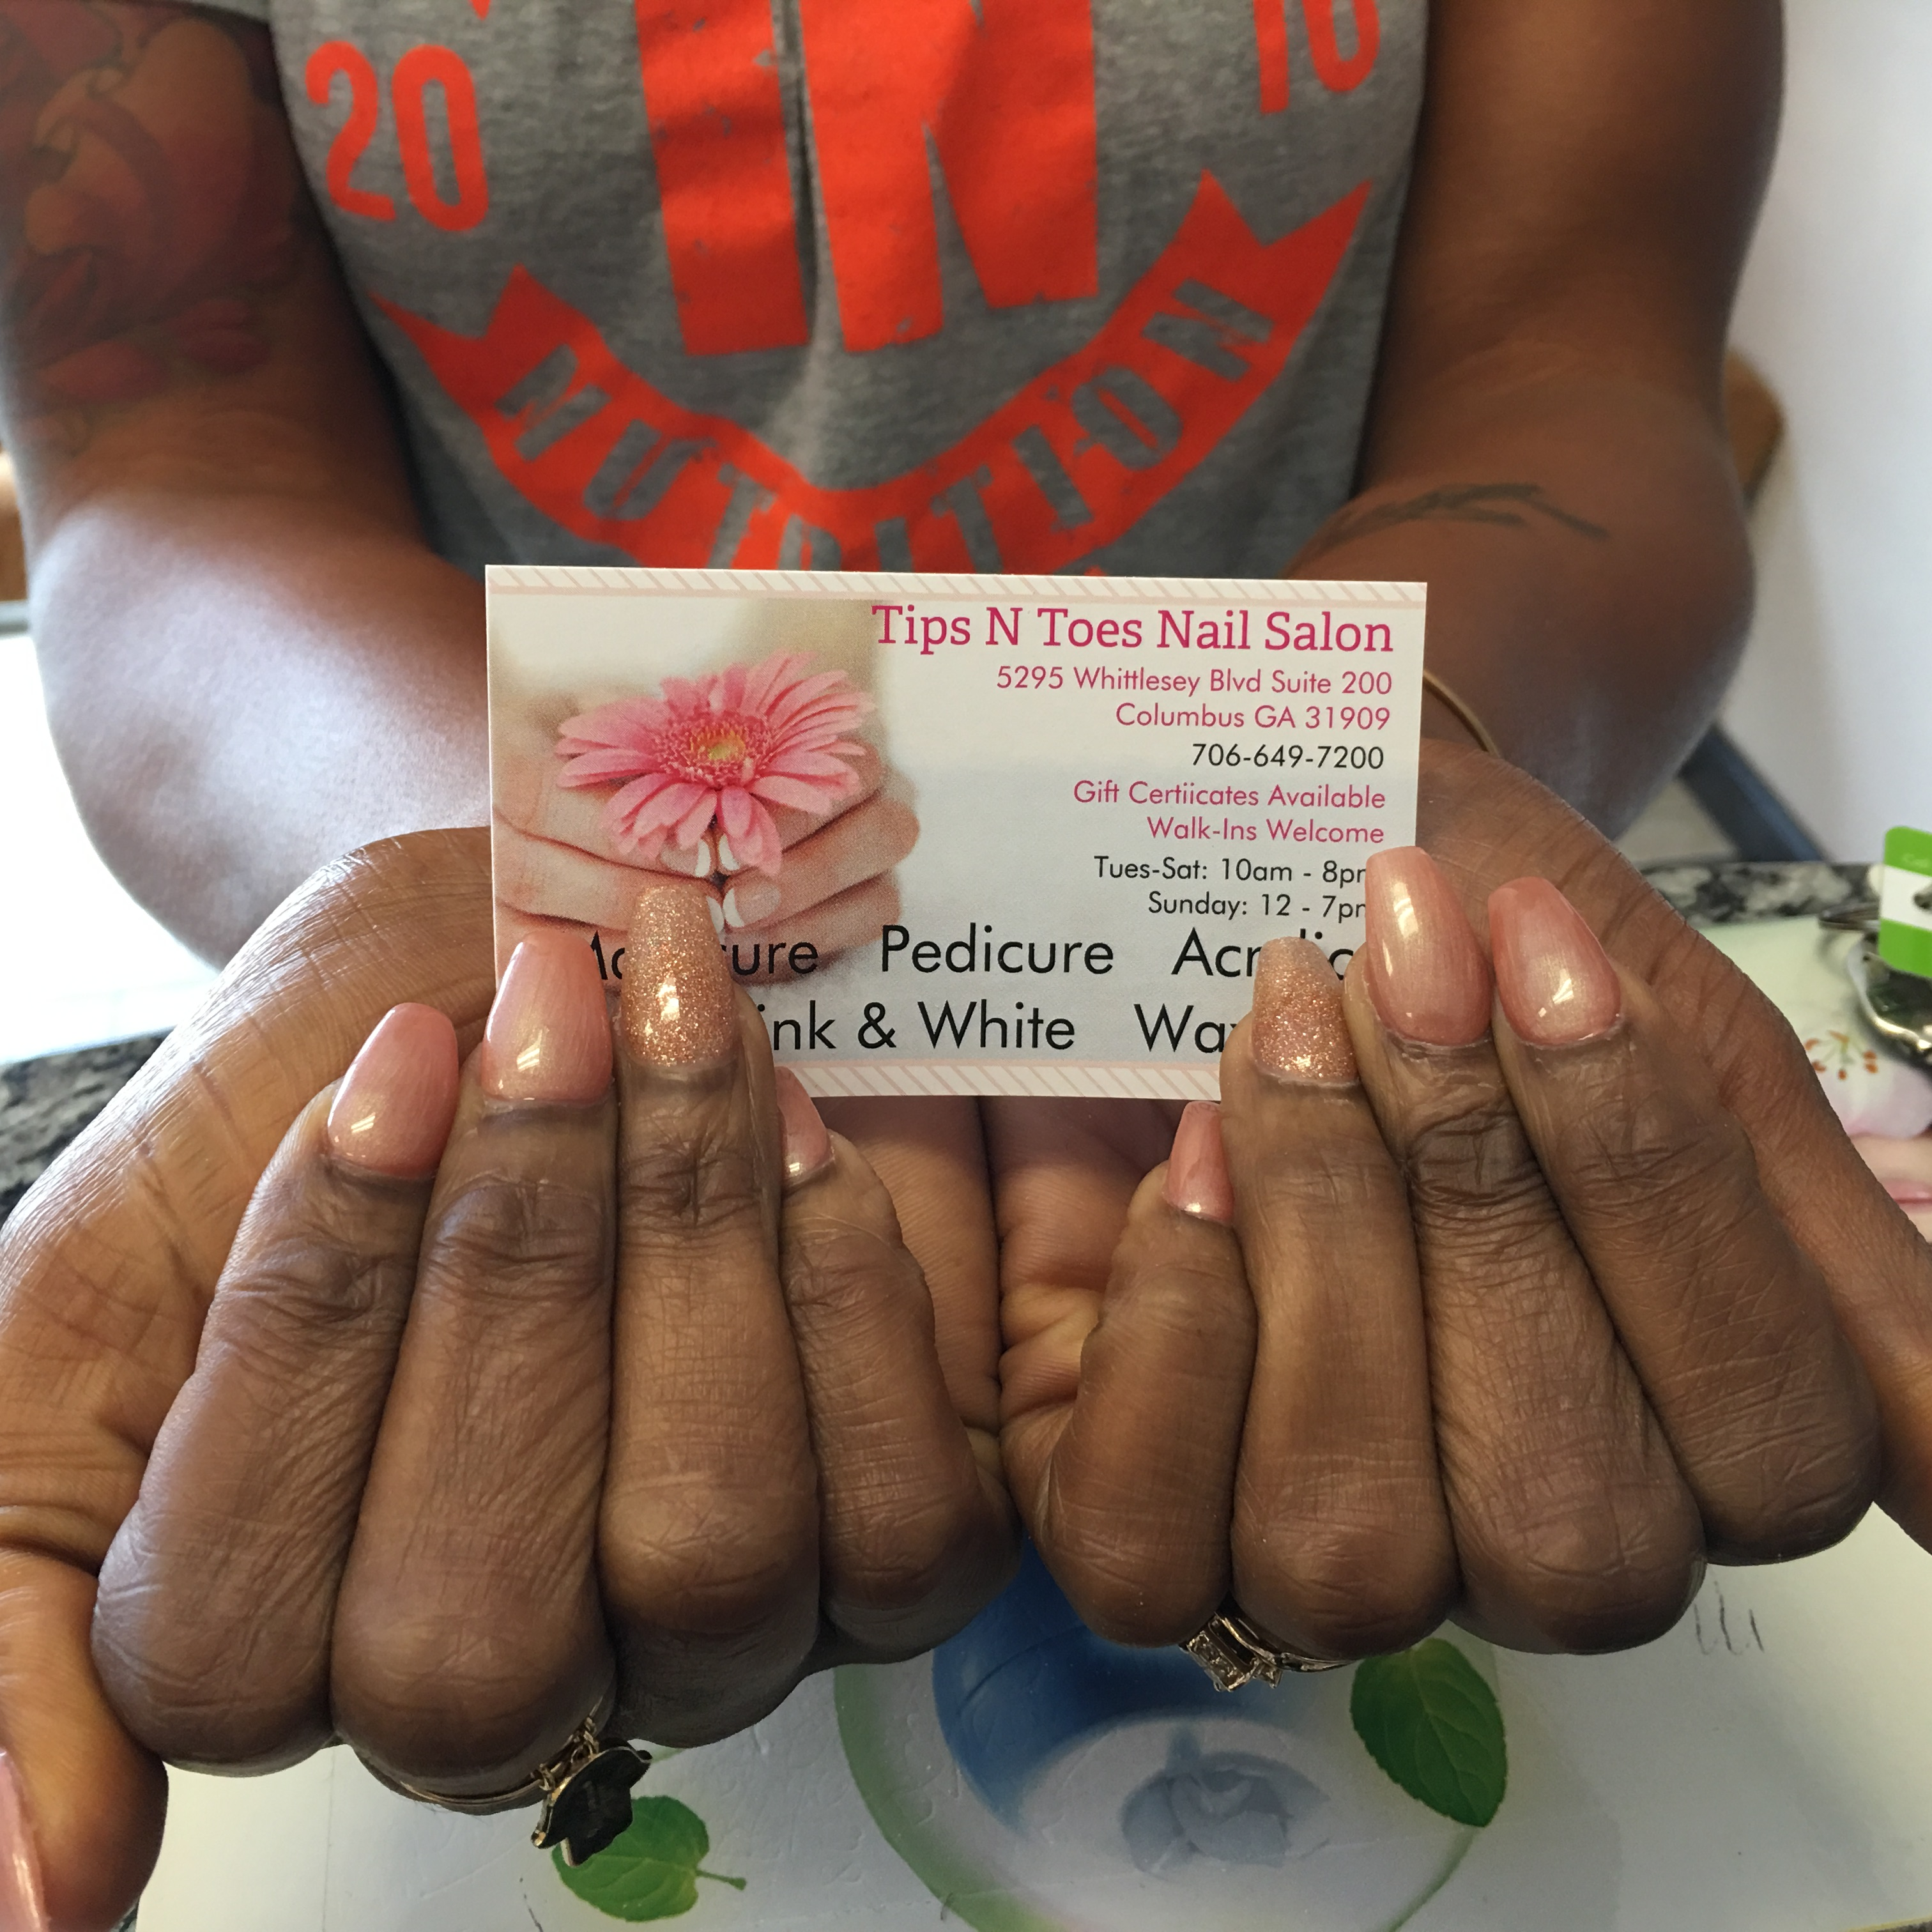 Tips And Toes 5295 Whittlesey Blvd, Columbus, GA 31909 - YP.com